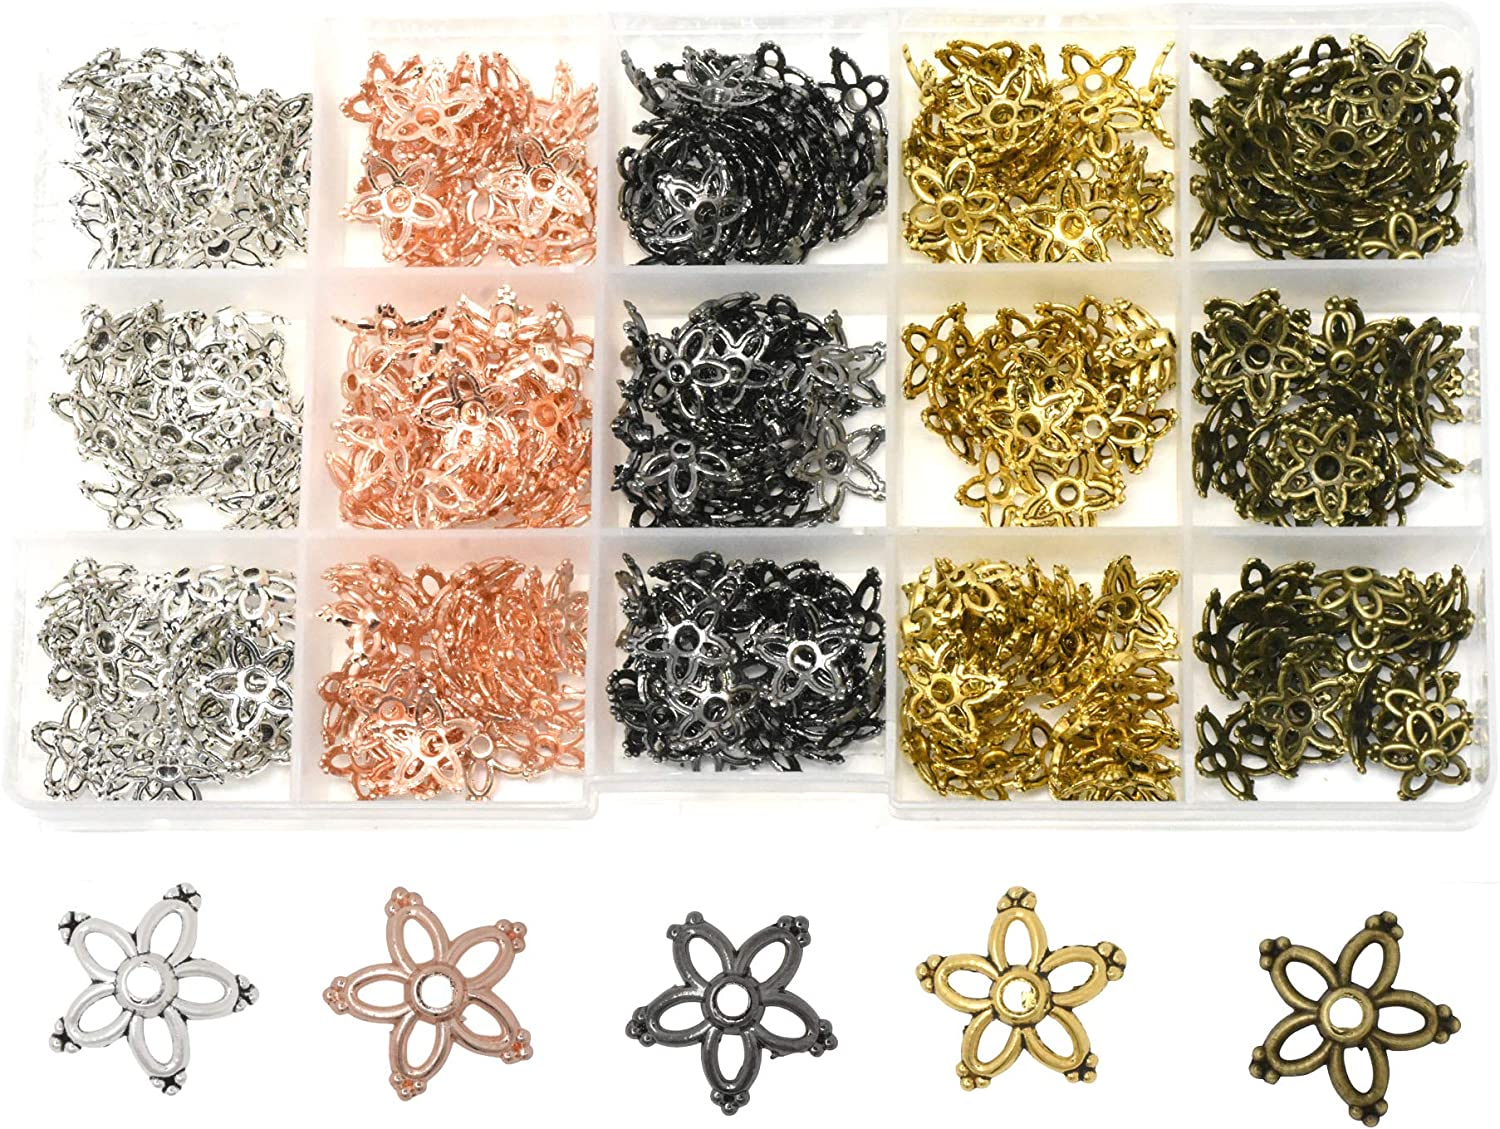 100 gold plated findings for jewellery making crafts 6mm diameter bead caps